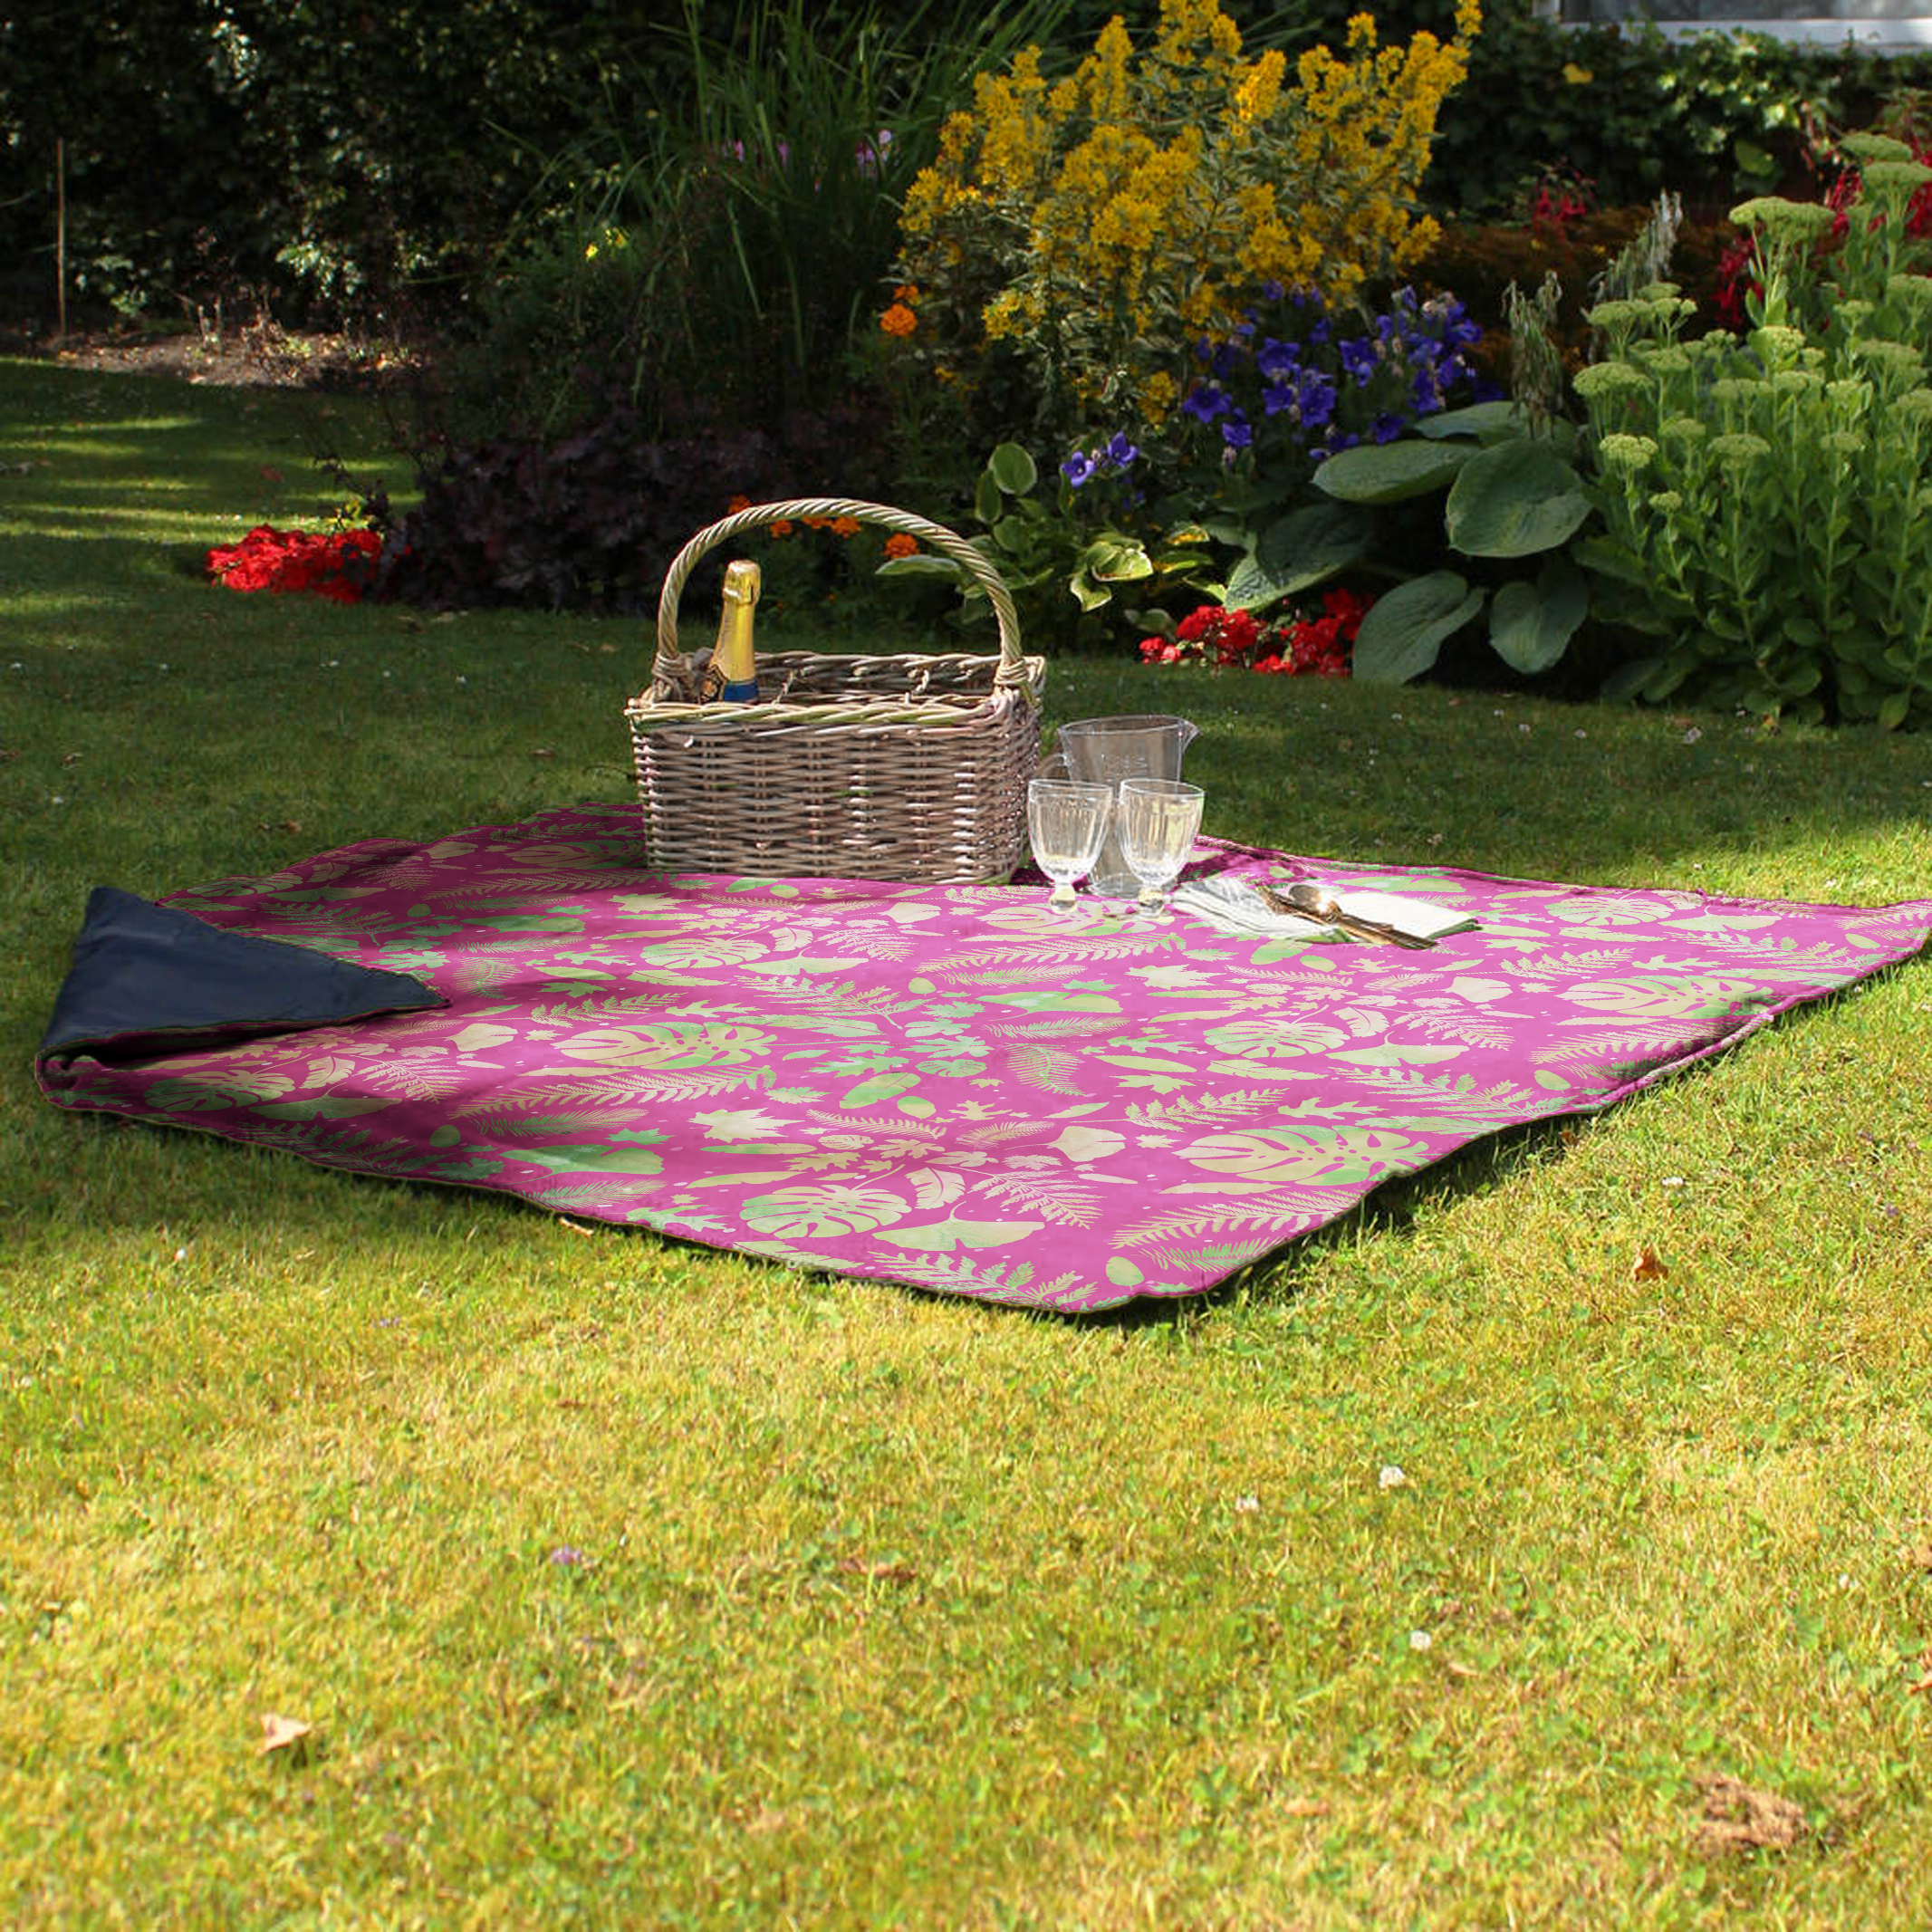 The Seeds Picnic Blanket